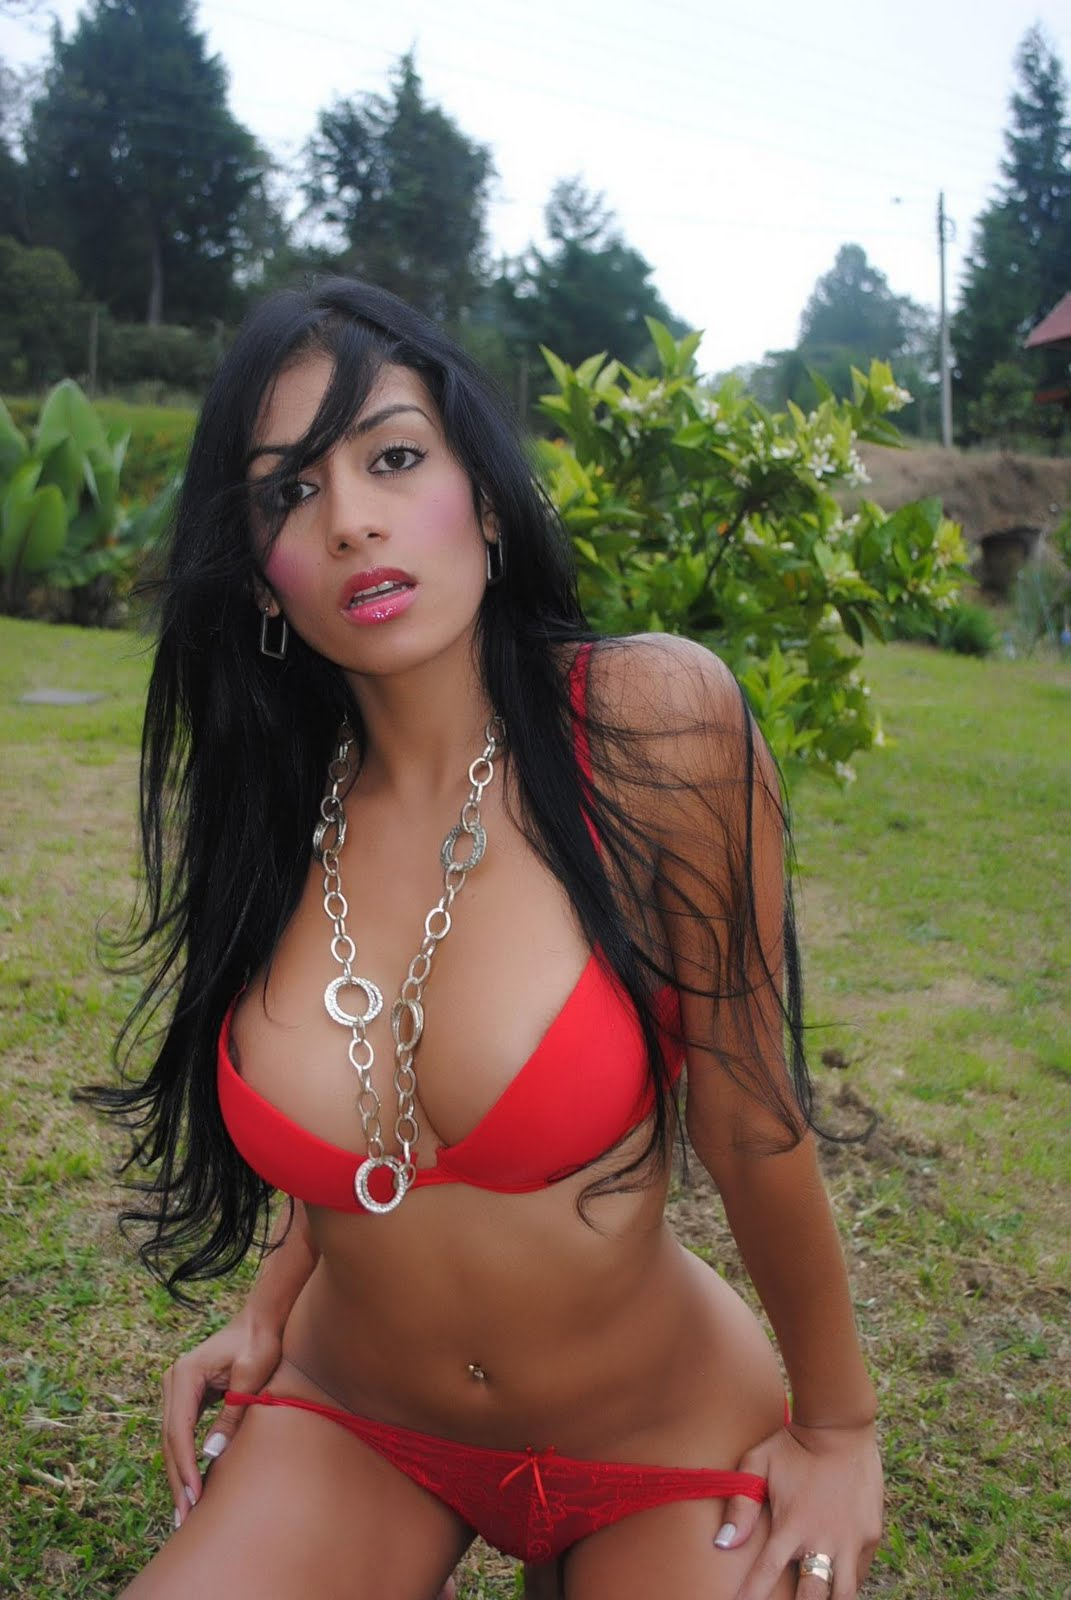 shemale colombian